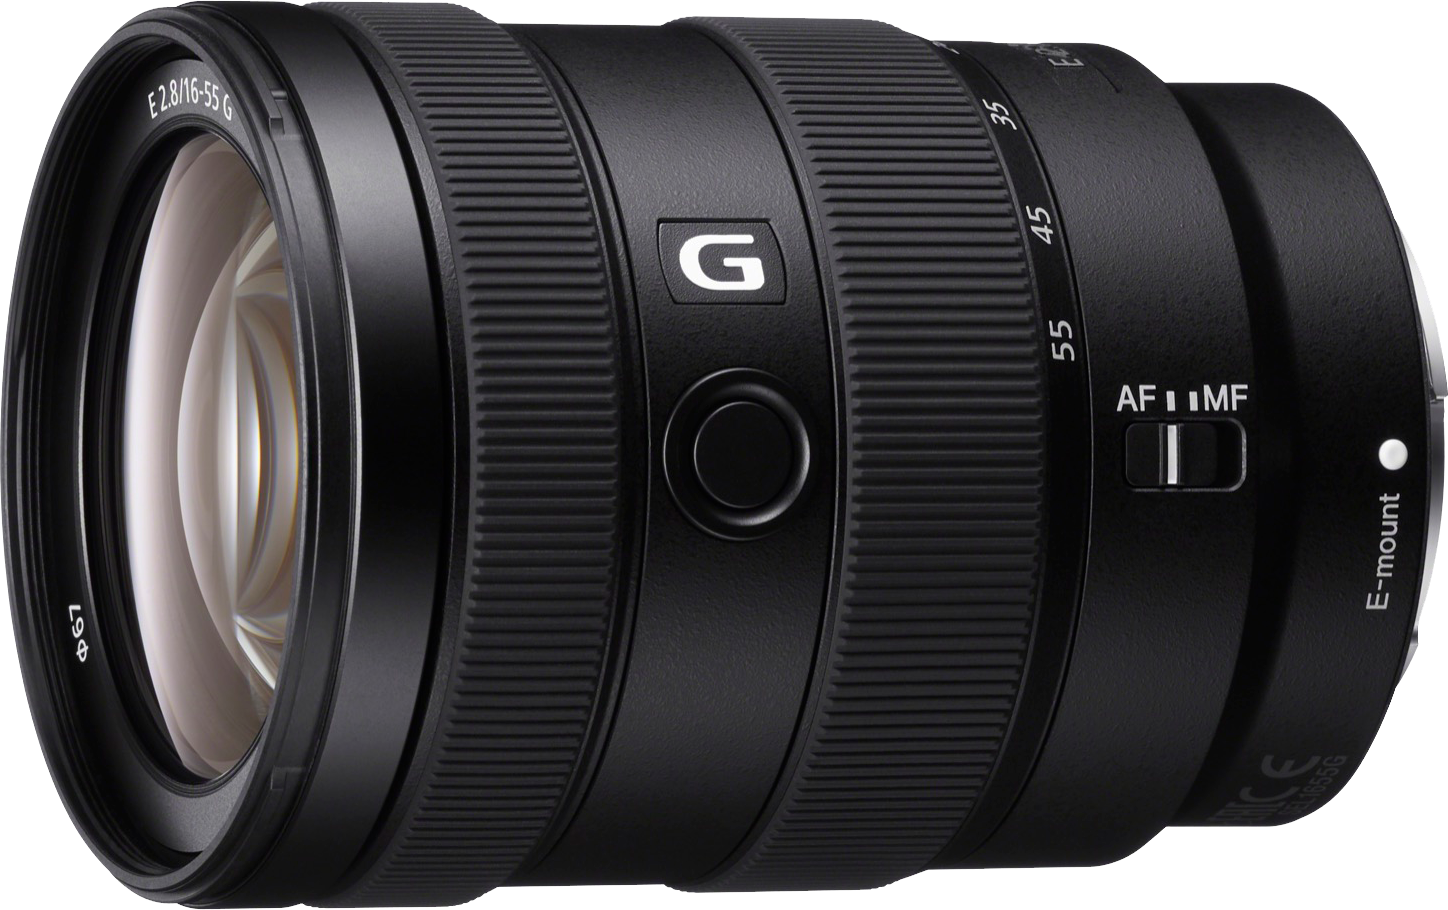 Sony E 16-55mm F2.8 G: Digital Photography Review